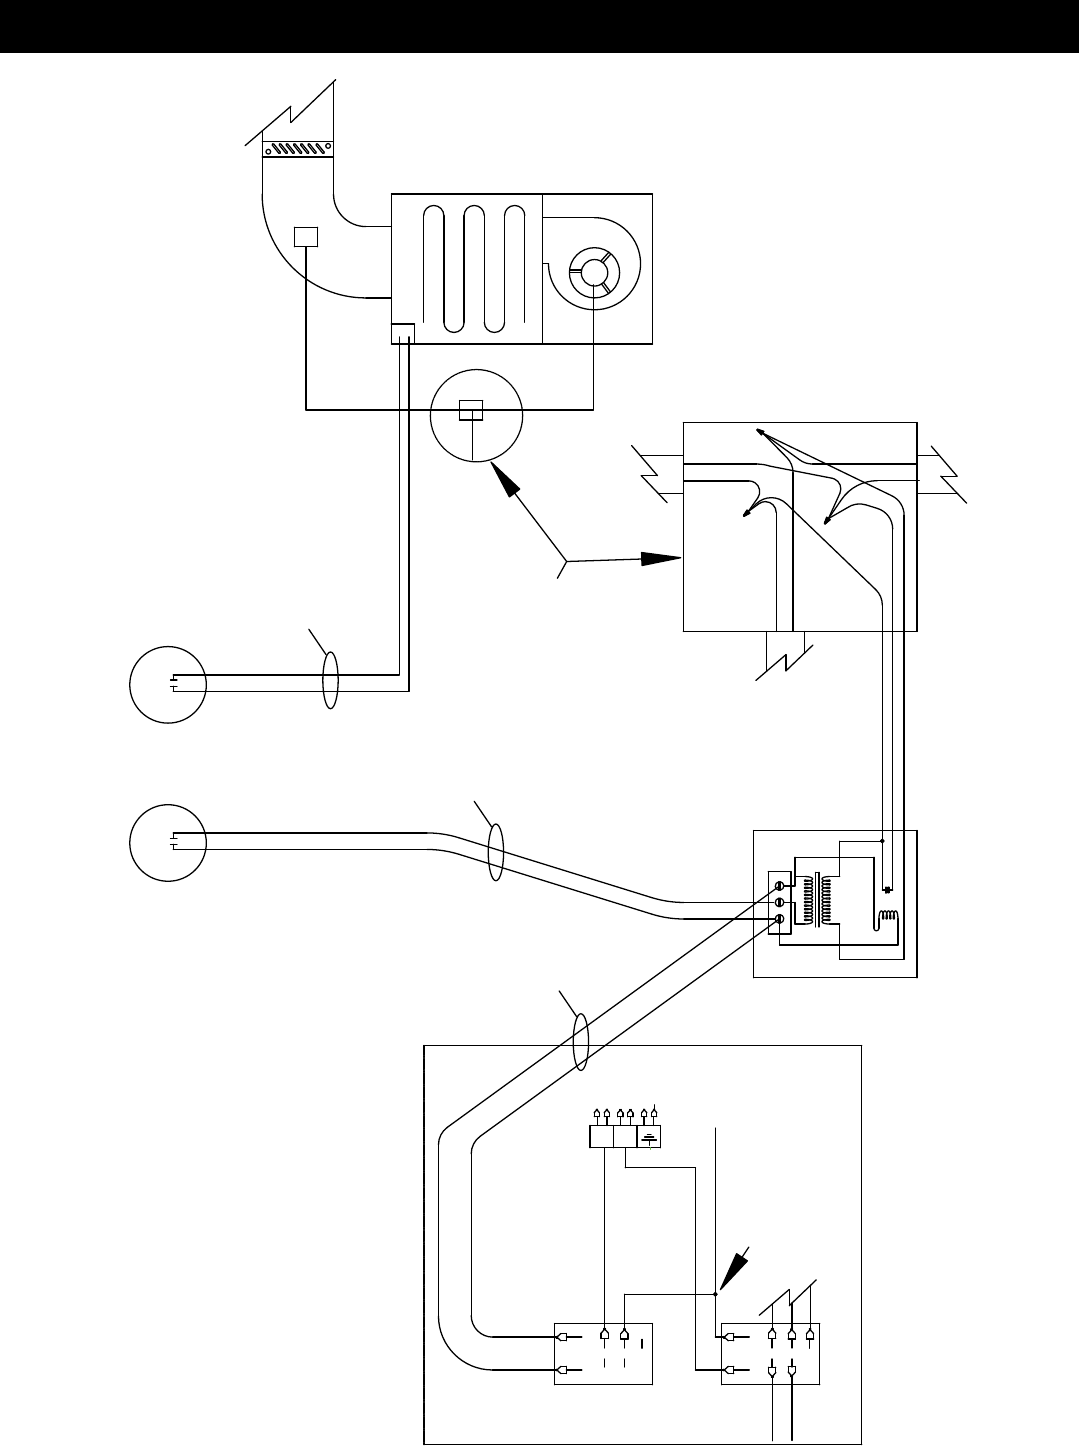 r8285a1048 wiring diagram honeywell thermostat sub base wiring honeywell  fan limit switch page 23 of heatiator